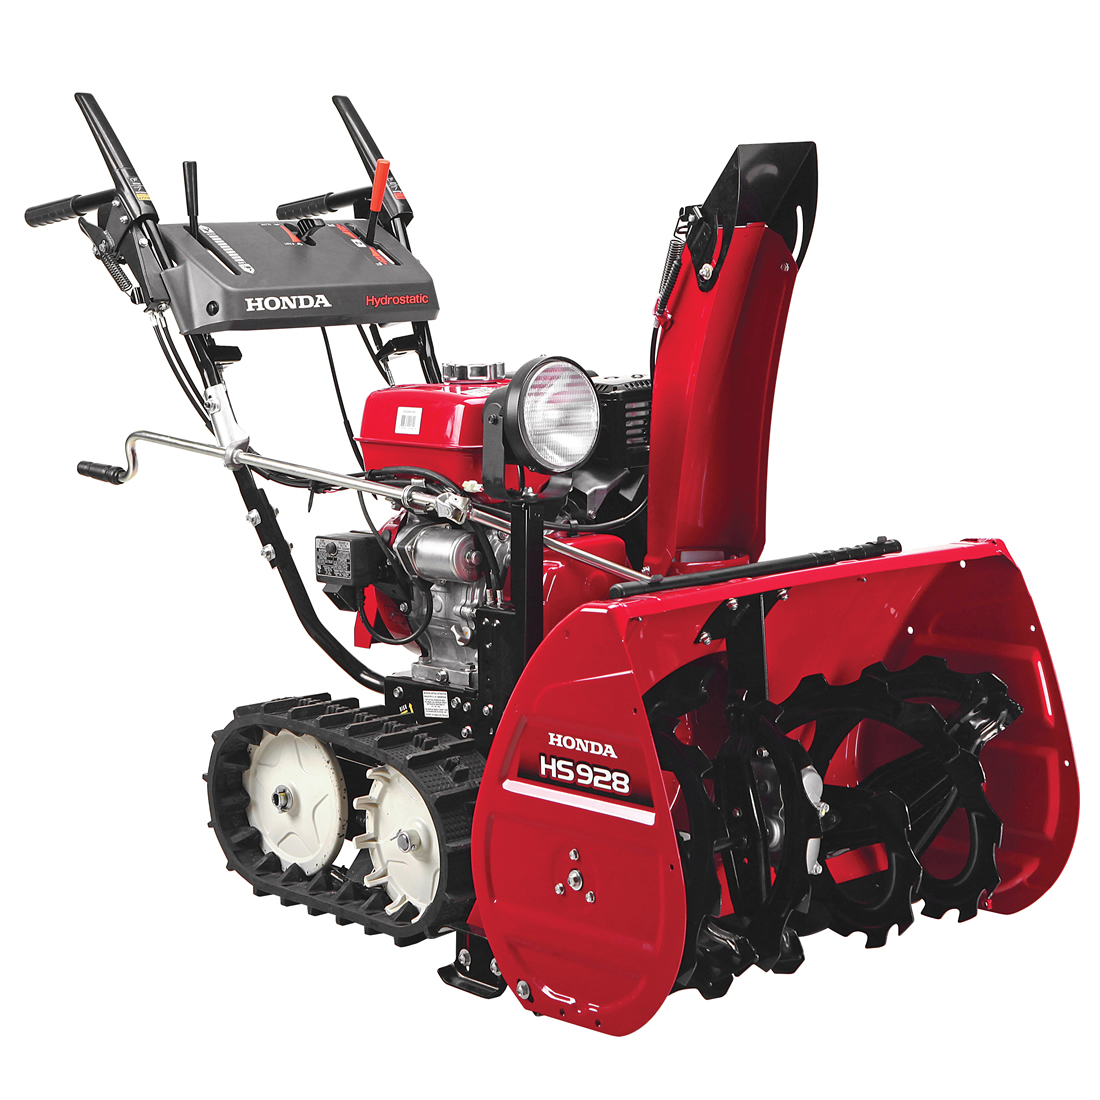 Honda HS928TA Snowblower